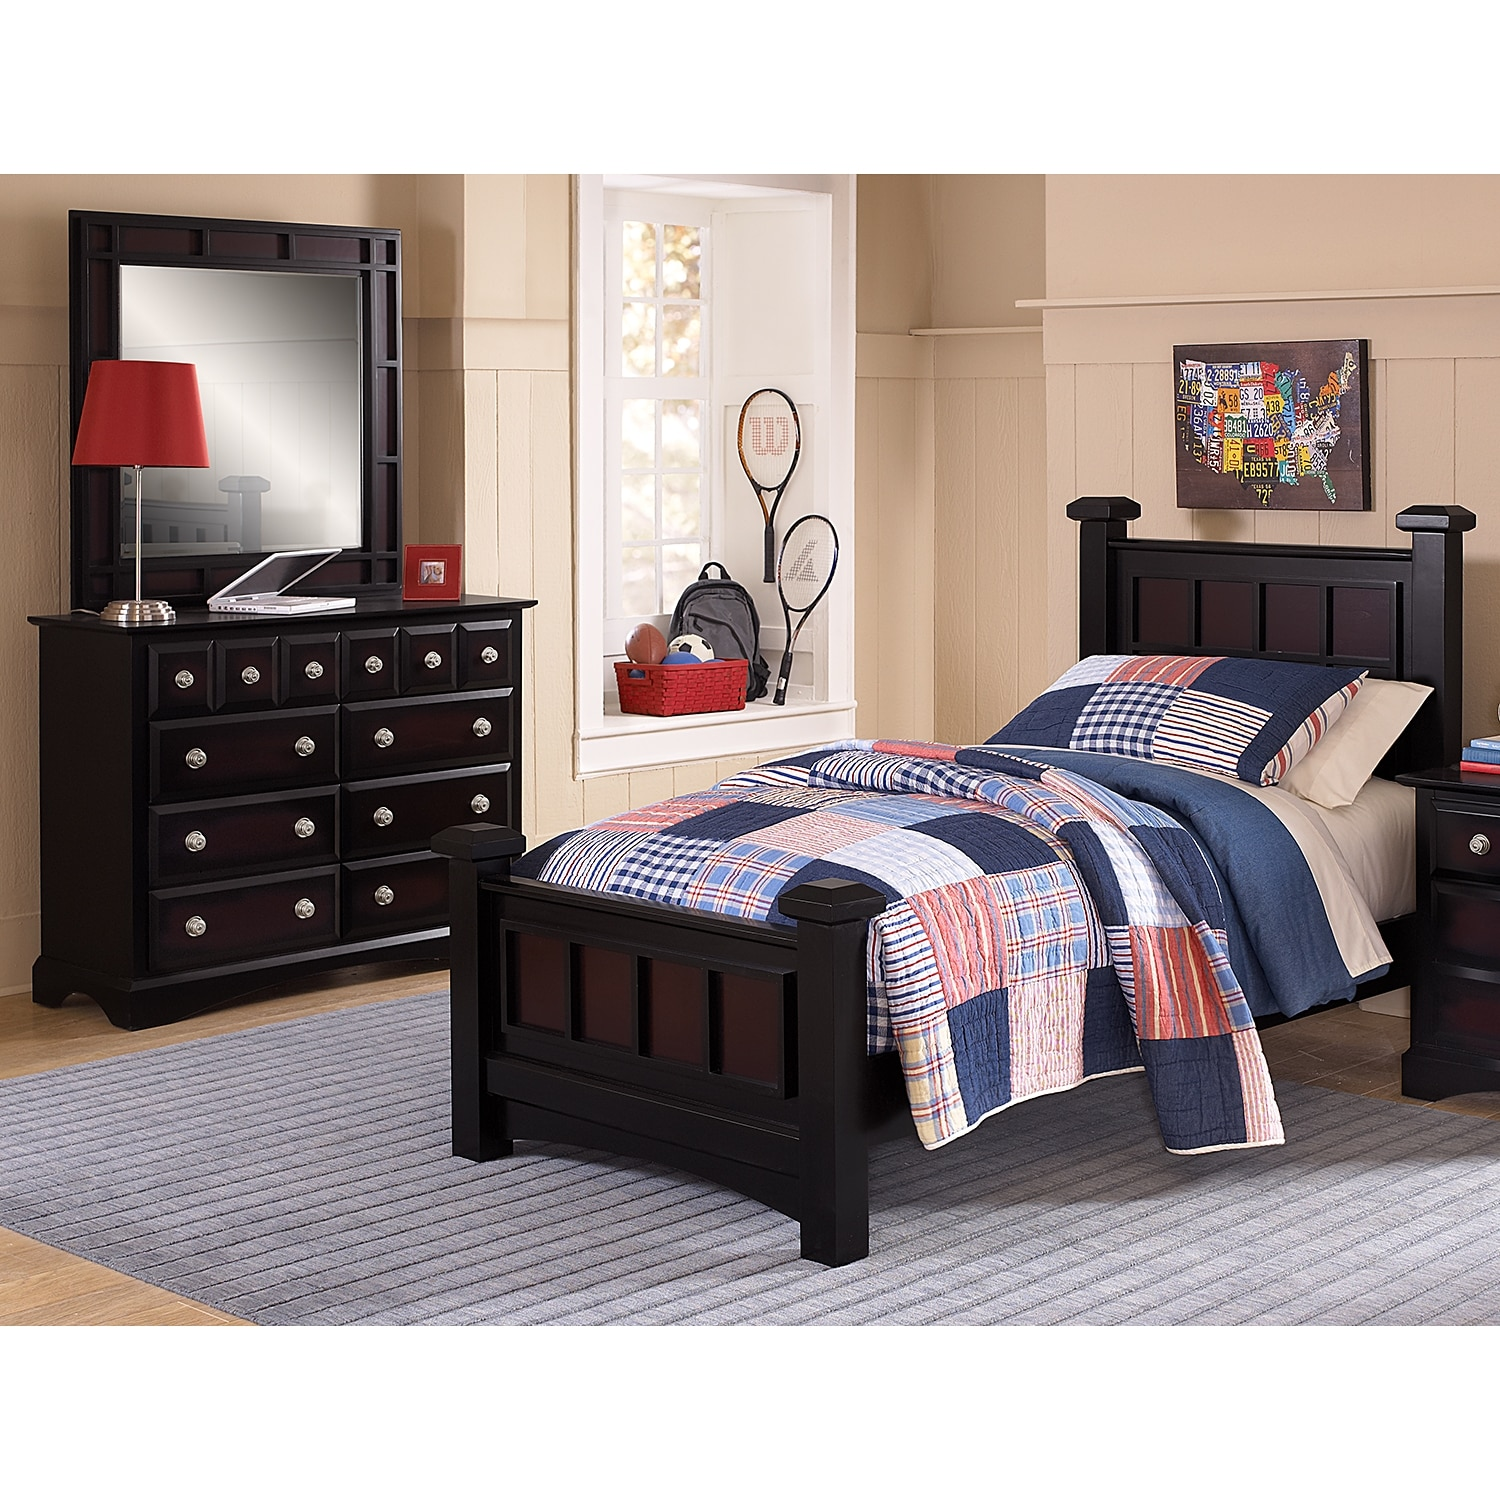 Kids Furniture - Winchester II 5 Pc. Twin Bedroom